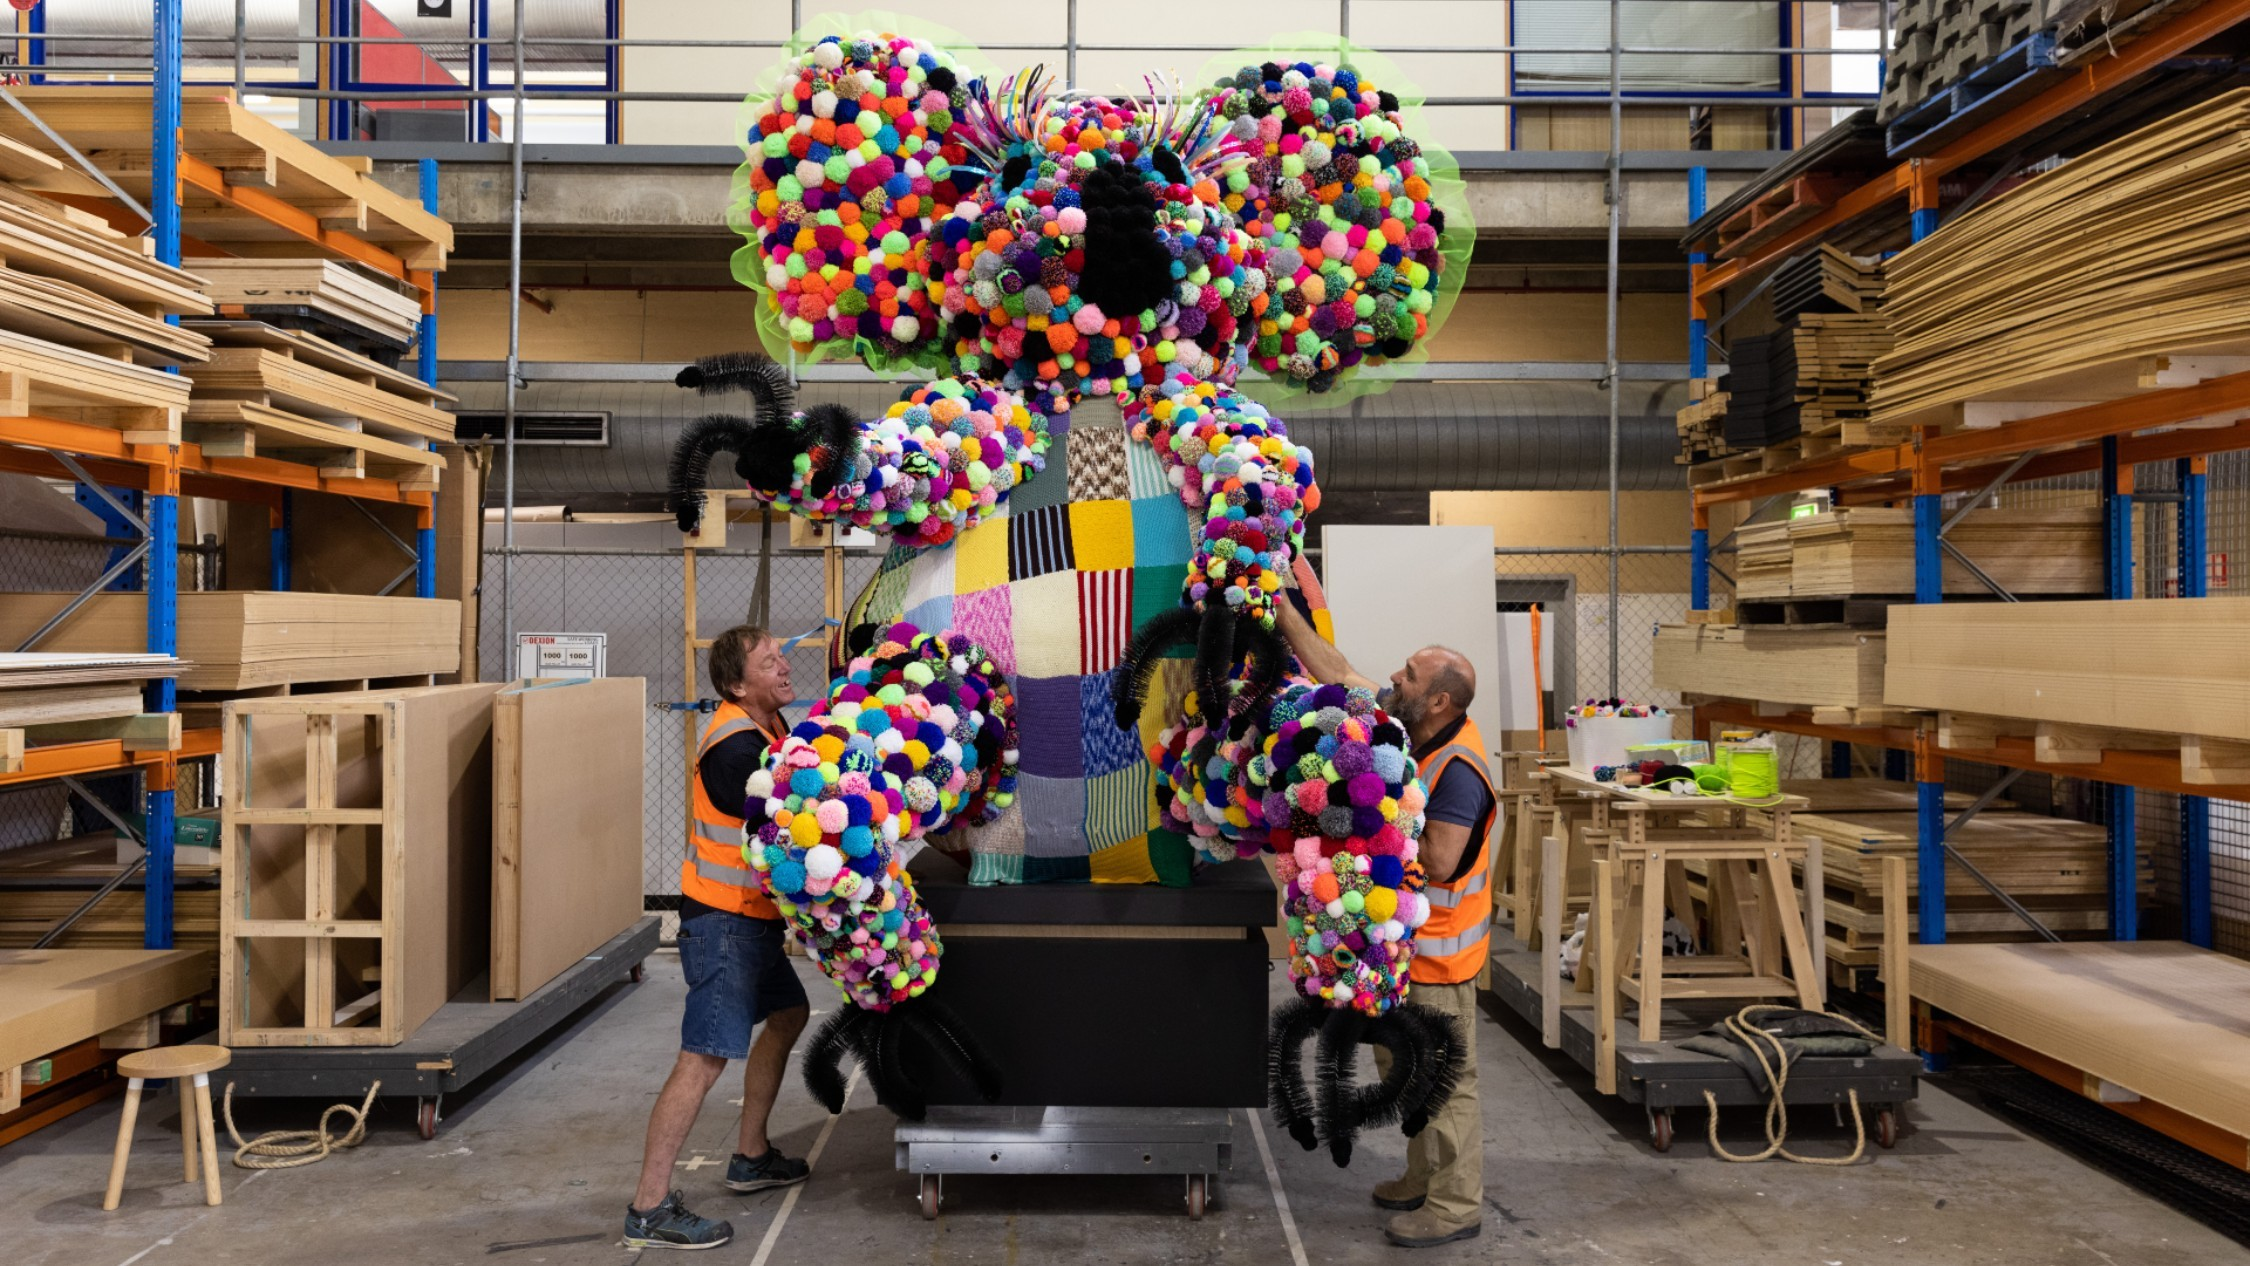 A giant koala is coming to the Powerhouse Museum this summer